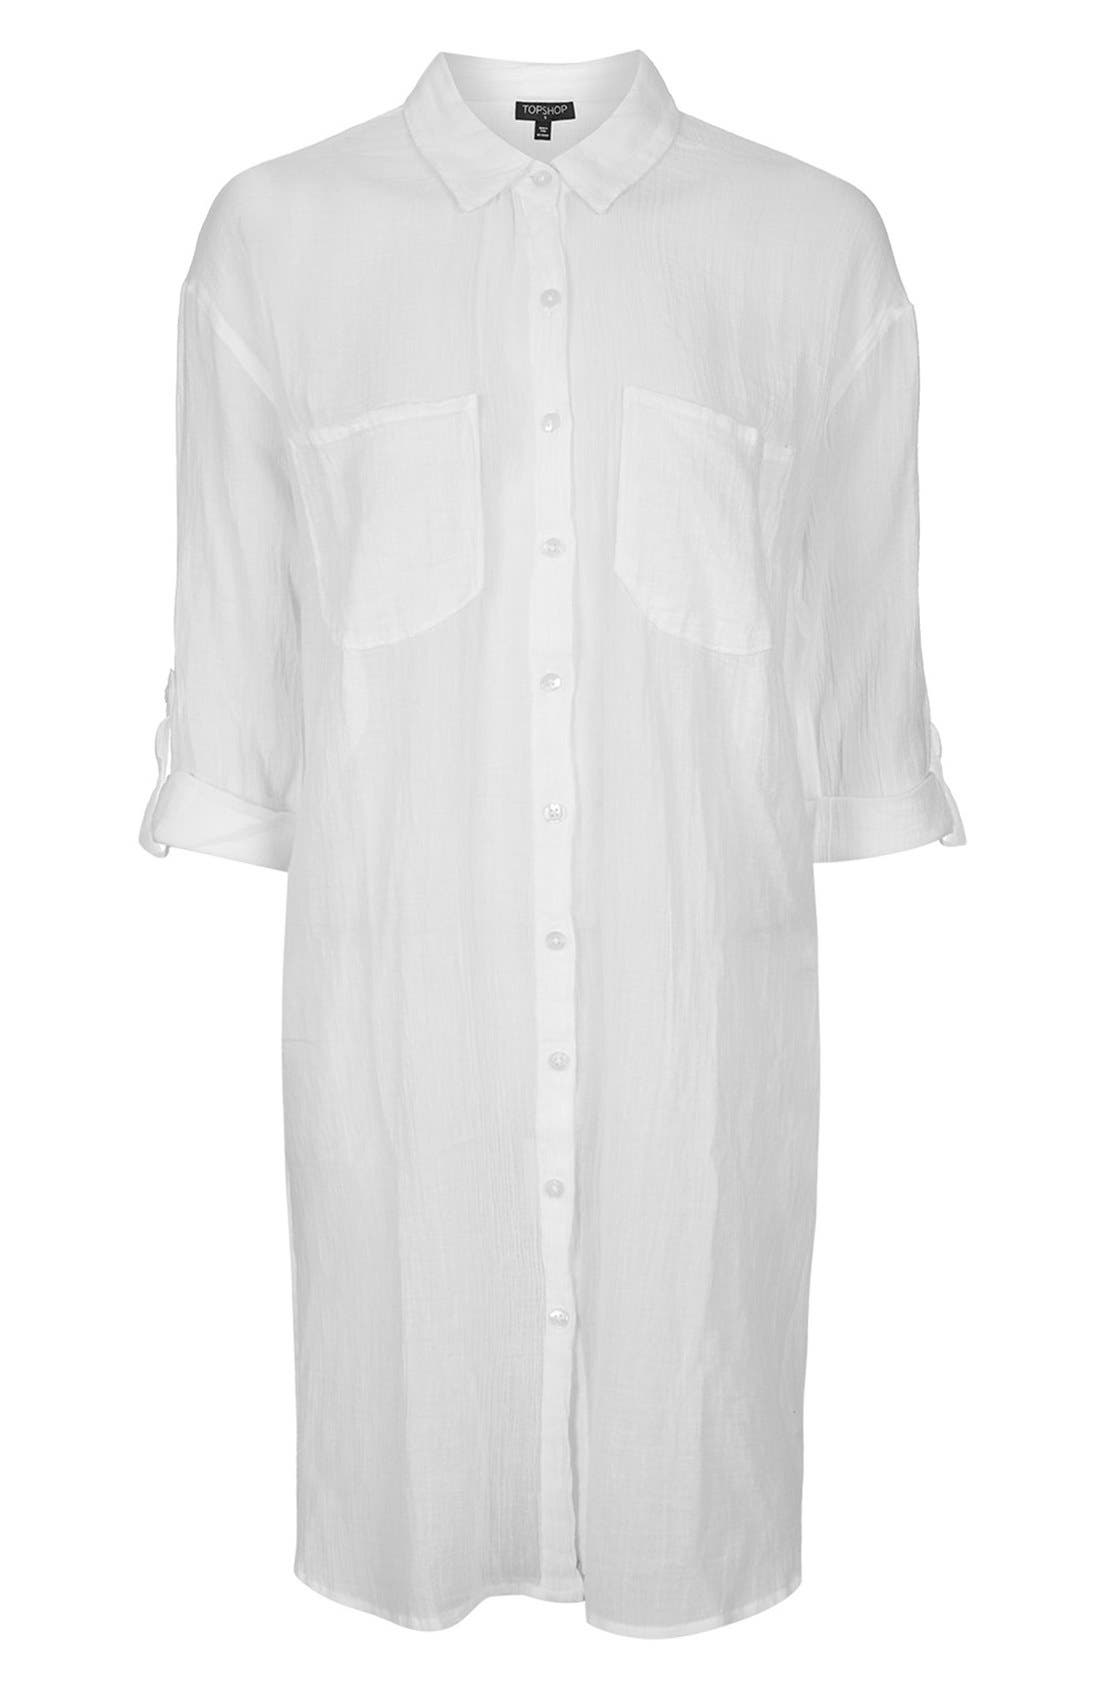 Alternate Image 1 Selected - Topshop Lattice Side Cover-Up Shirt